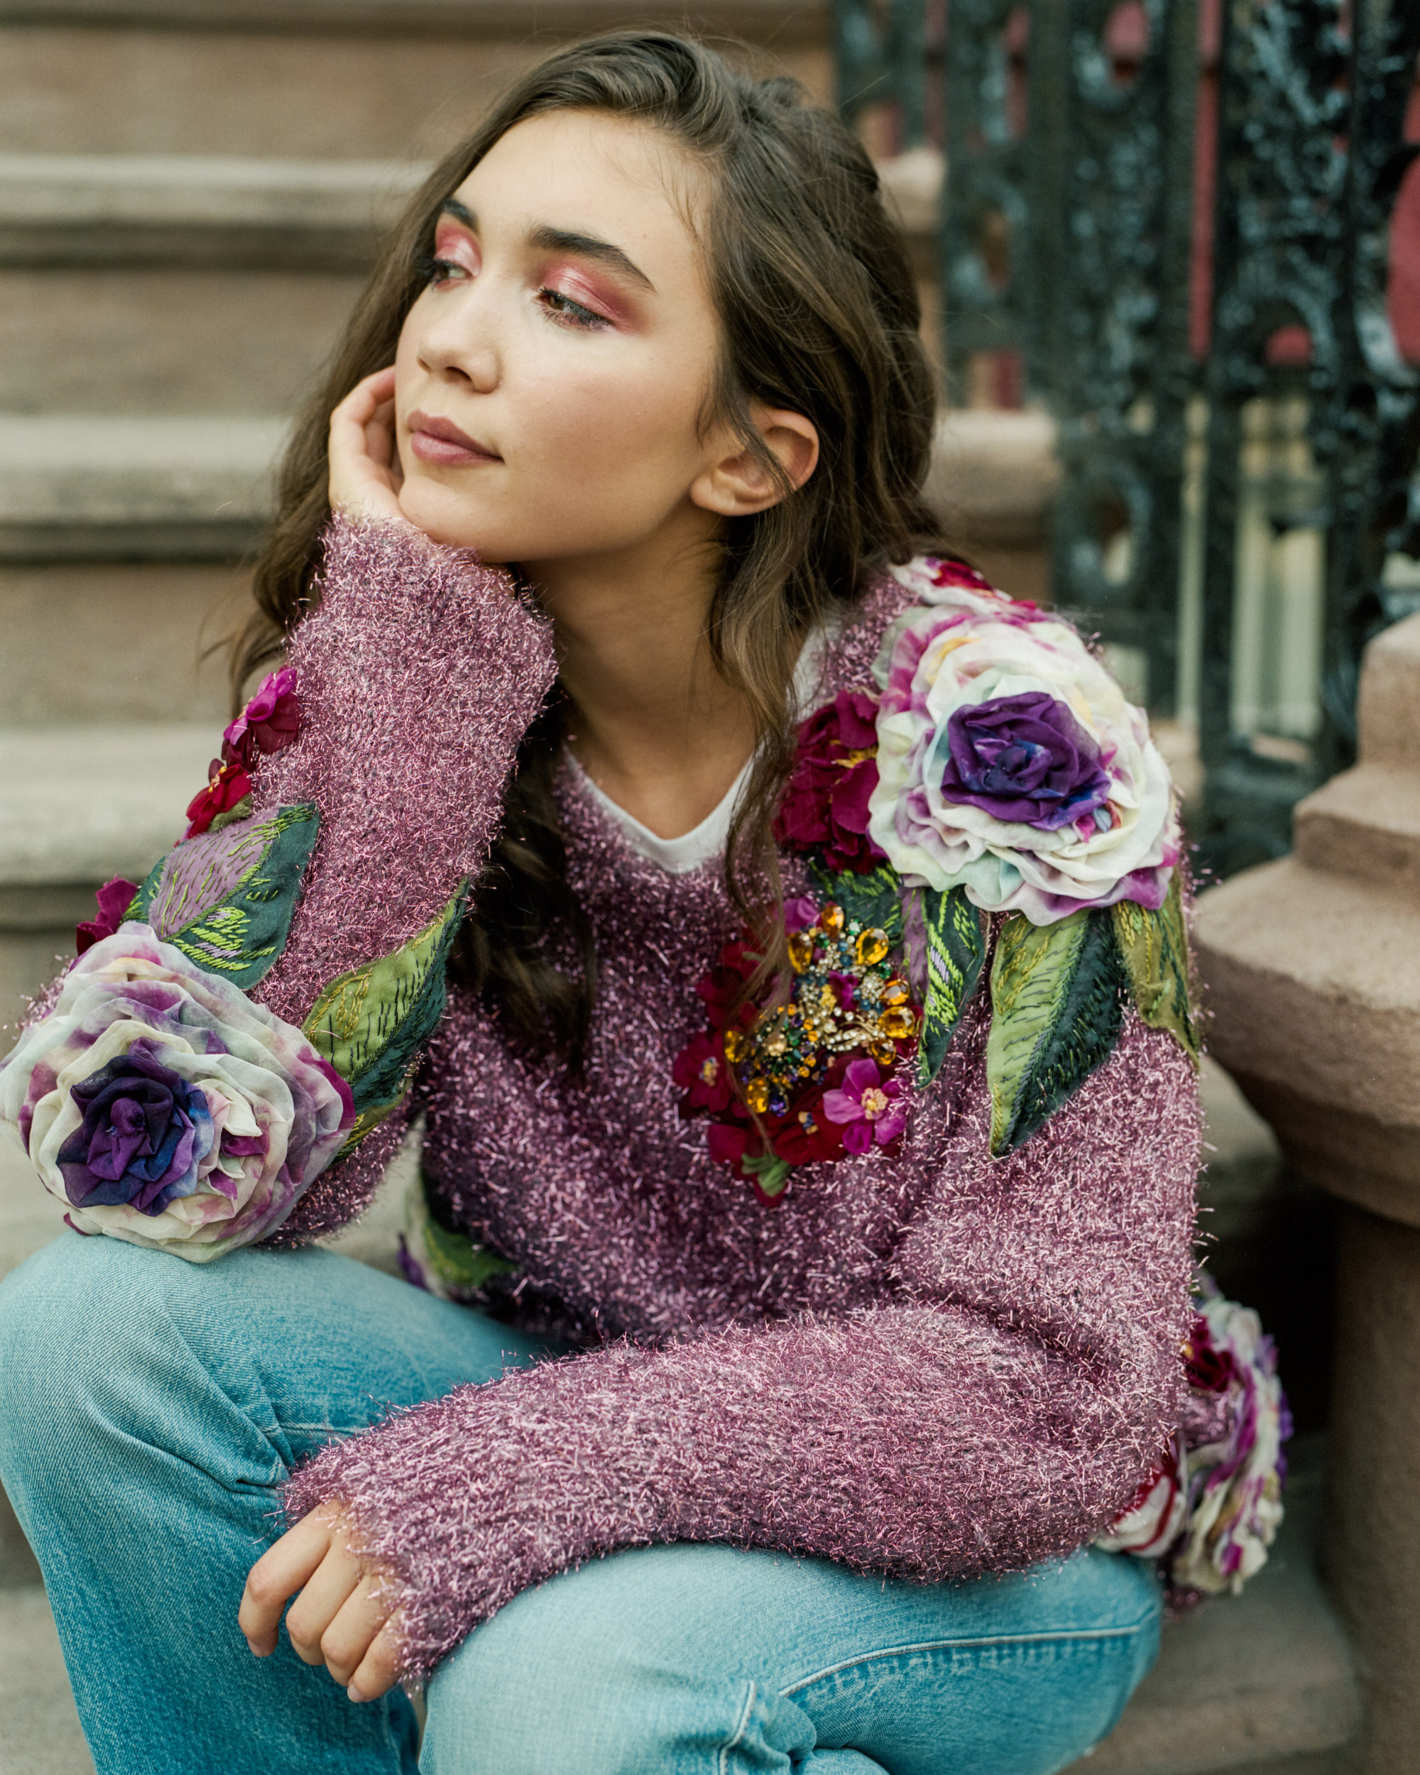 Rowan Blanchard - Absurdly young activist helping encourage American youth to participate in political activism